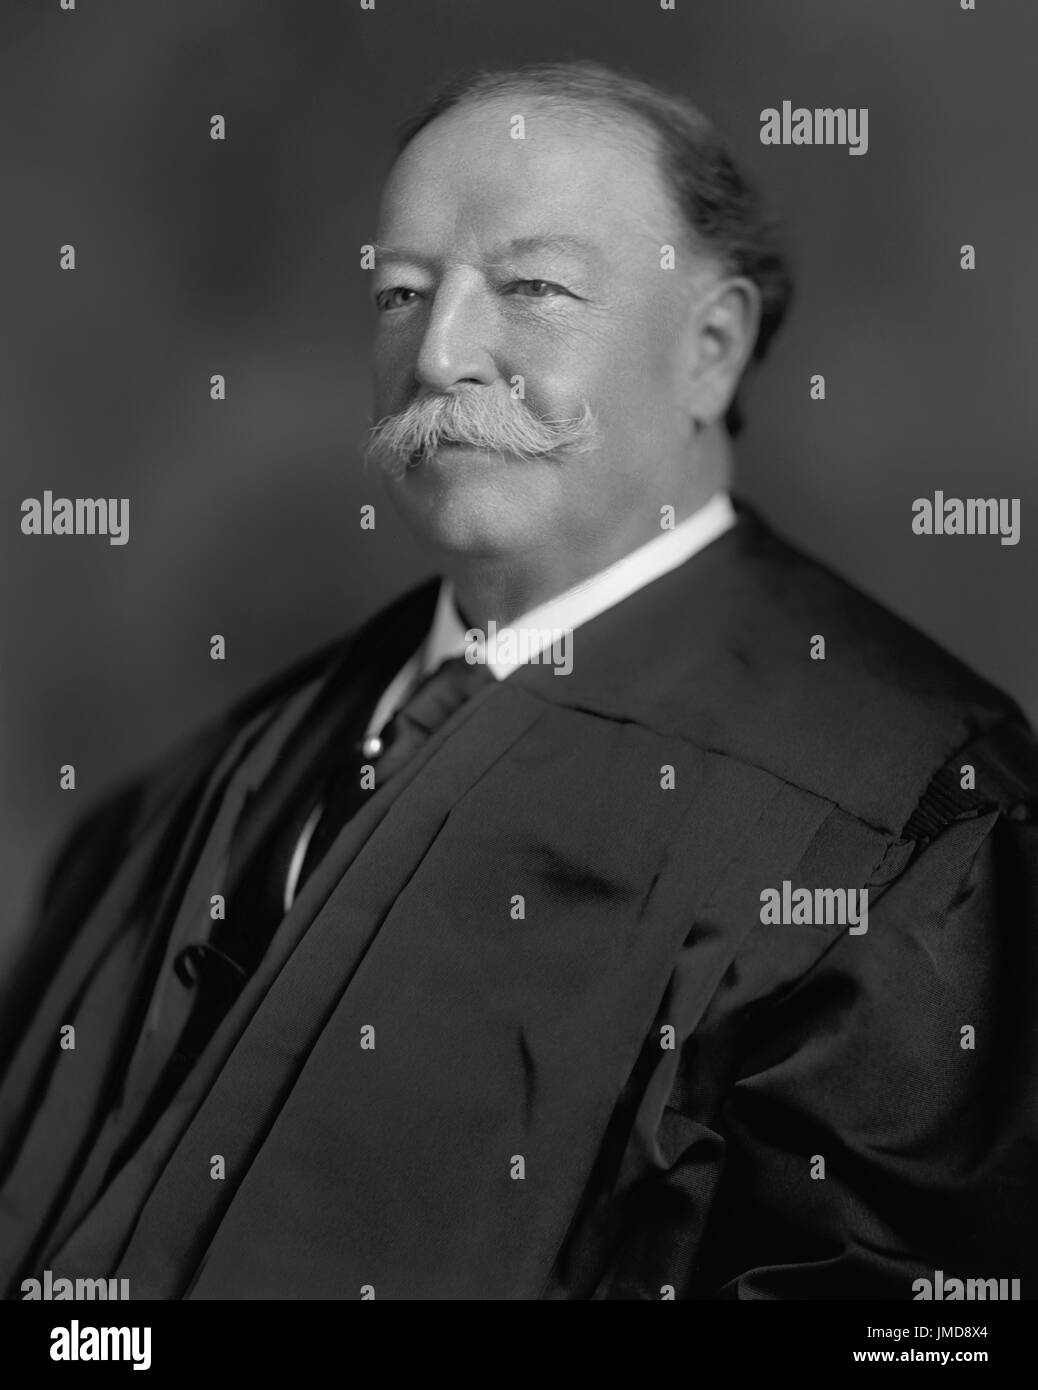 William Howard Taft, Head and Shoulders Portrait as Chief Justice of the U.S. Supreme Court, Harris & Ewing, 1921 - Stock Image